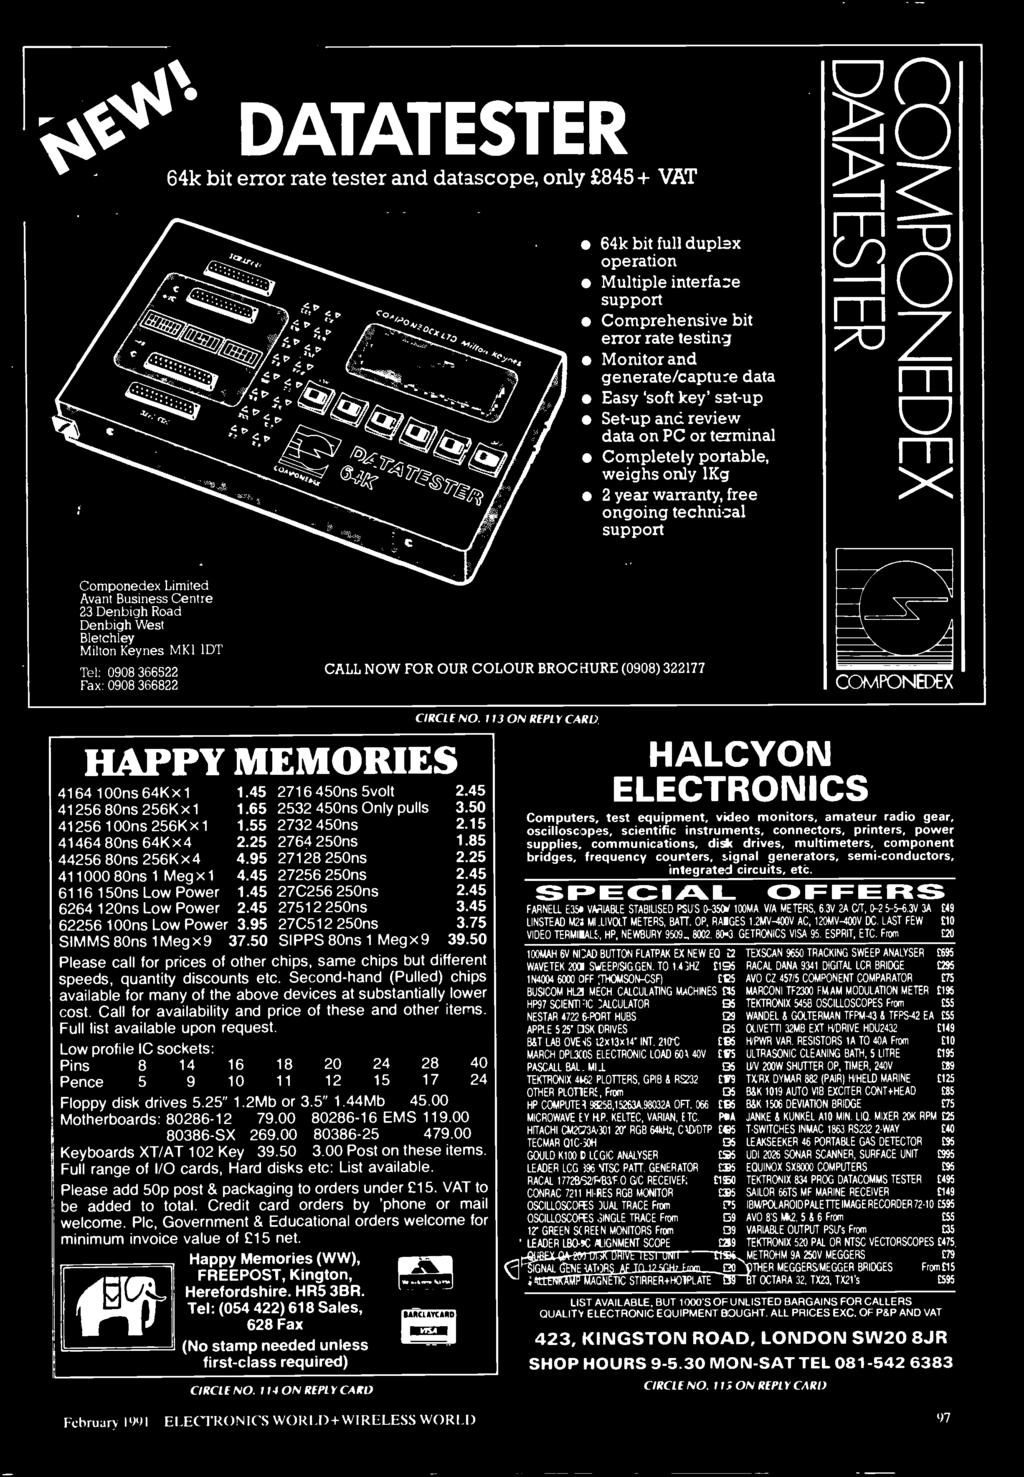 113 ON REPLY CARD HAPPY MEMORIES 4164 100ns 64K x 1 1.45 2716 450ns 5volt 2.45